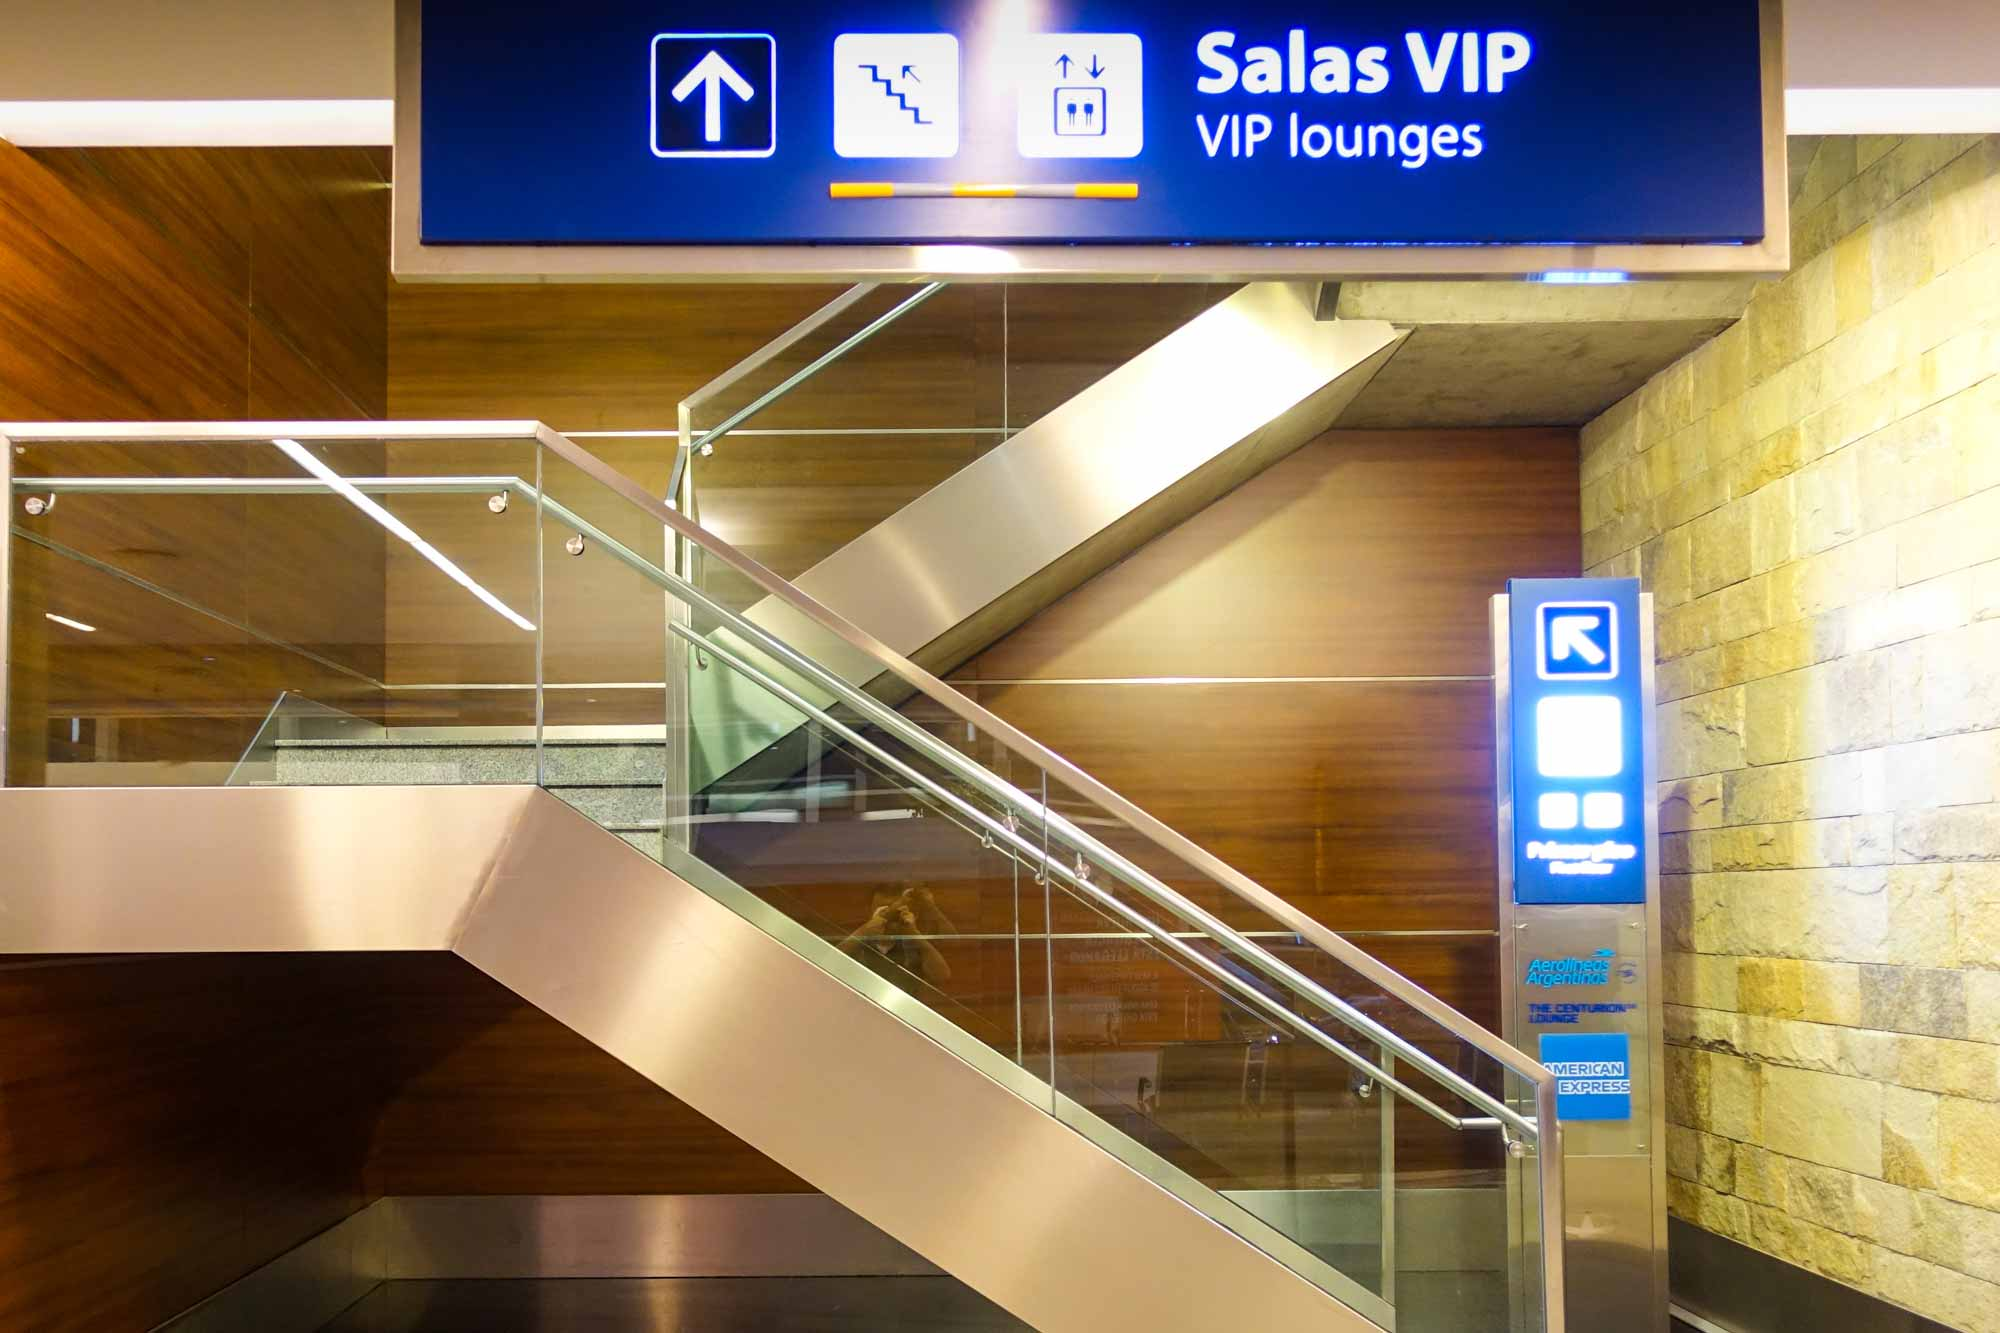 VIP Lounge directional sign in the airport